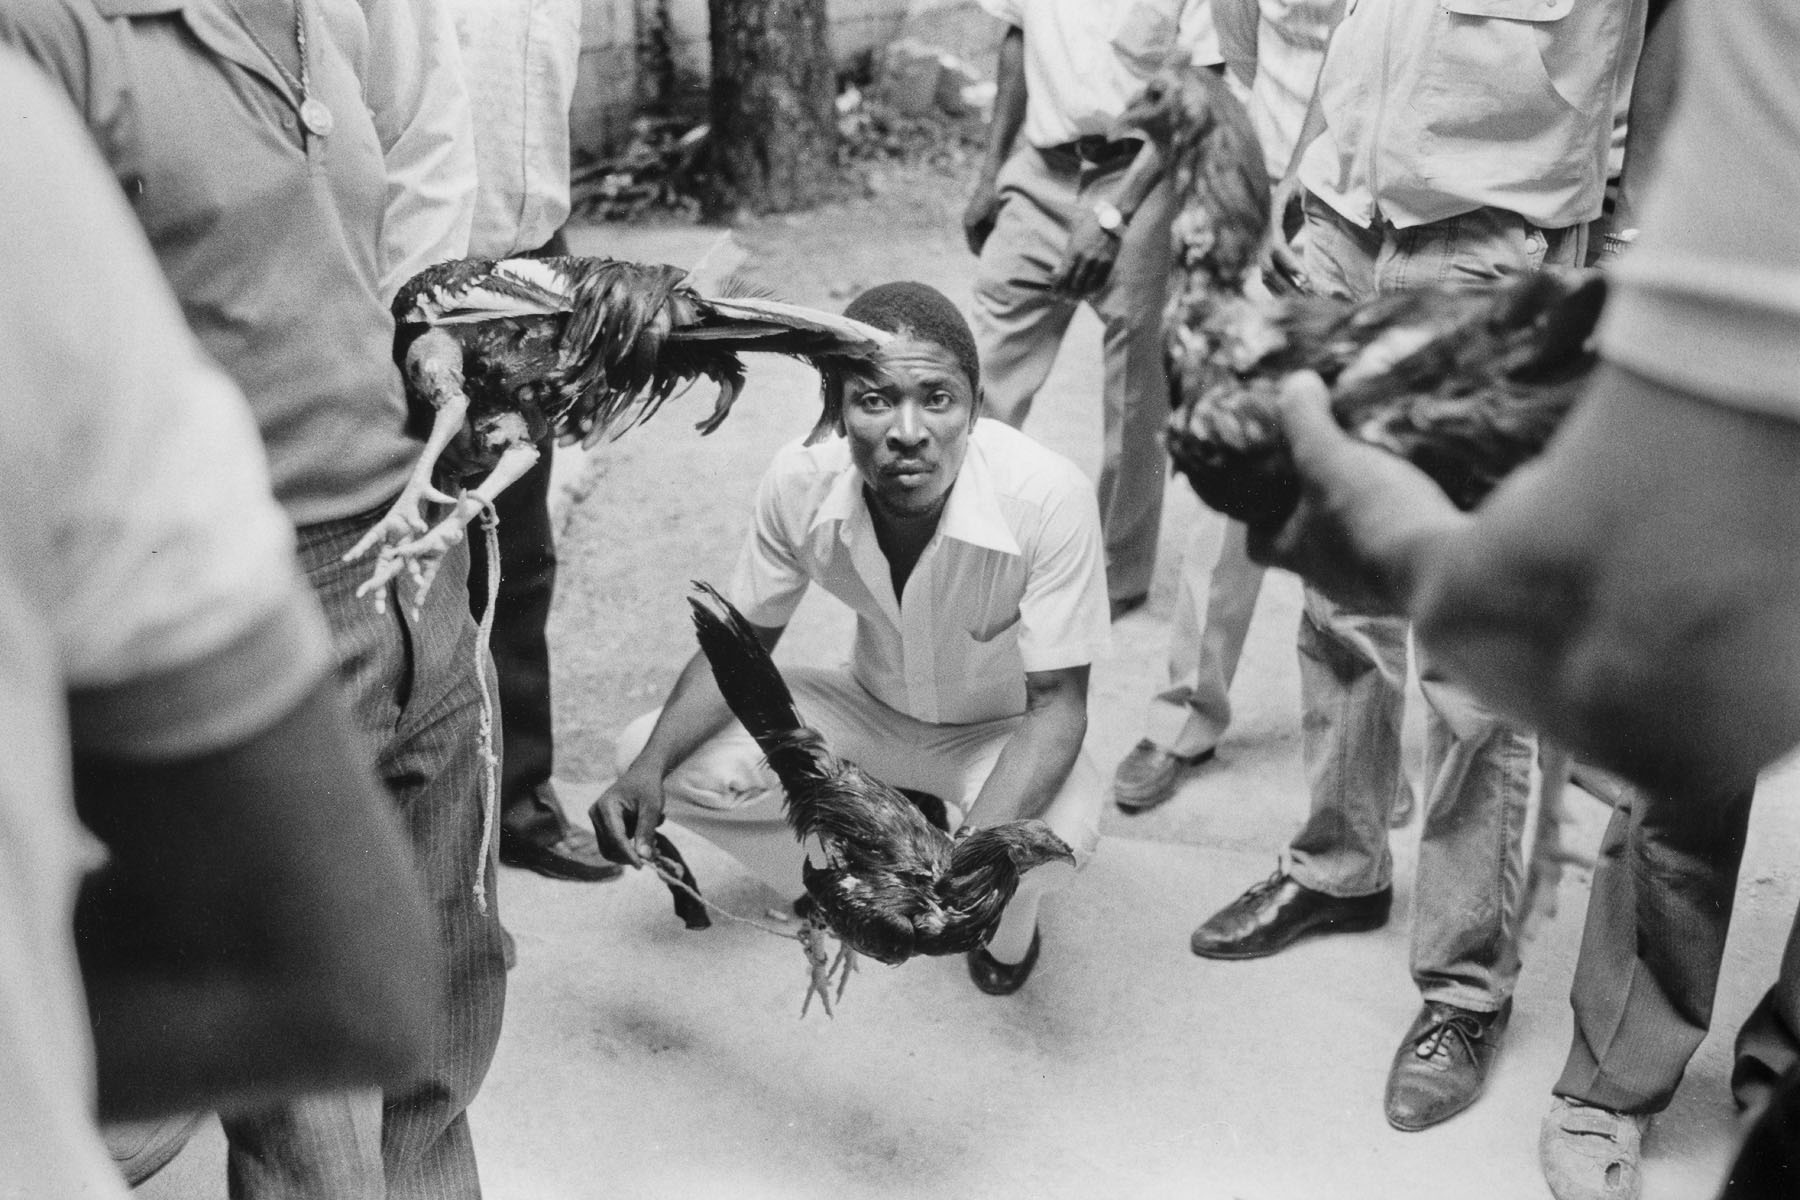 Rooster fight in Petion-Ville in August 1986